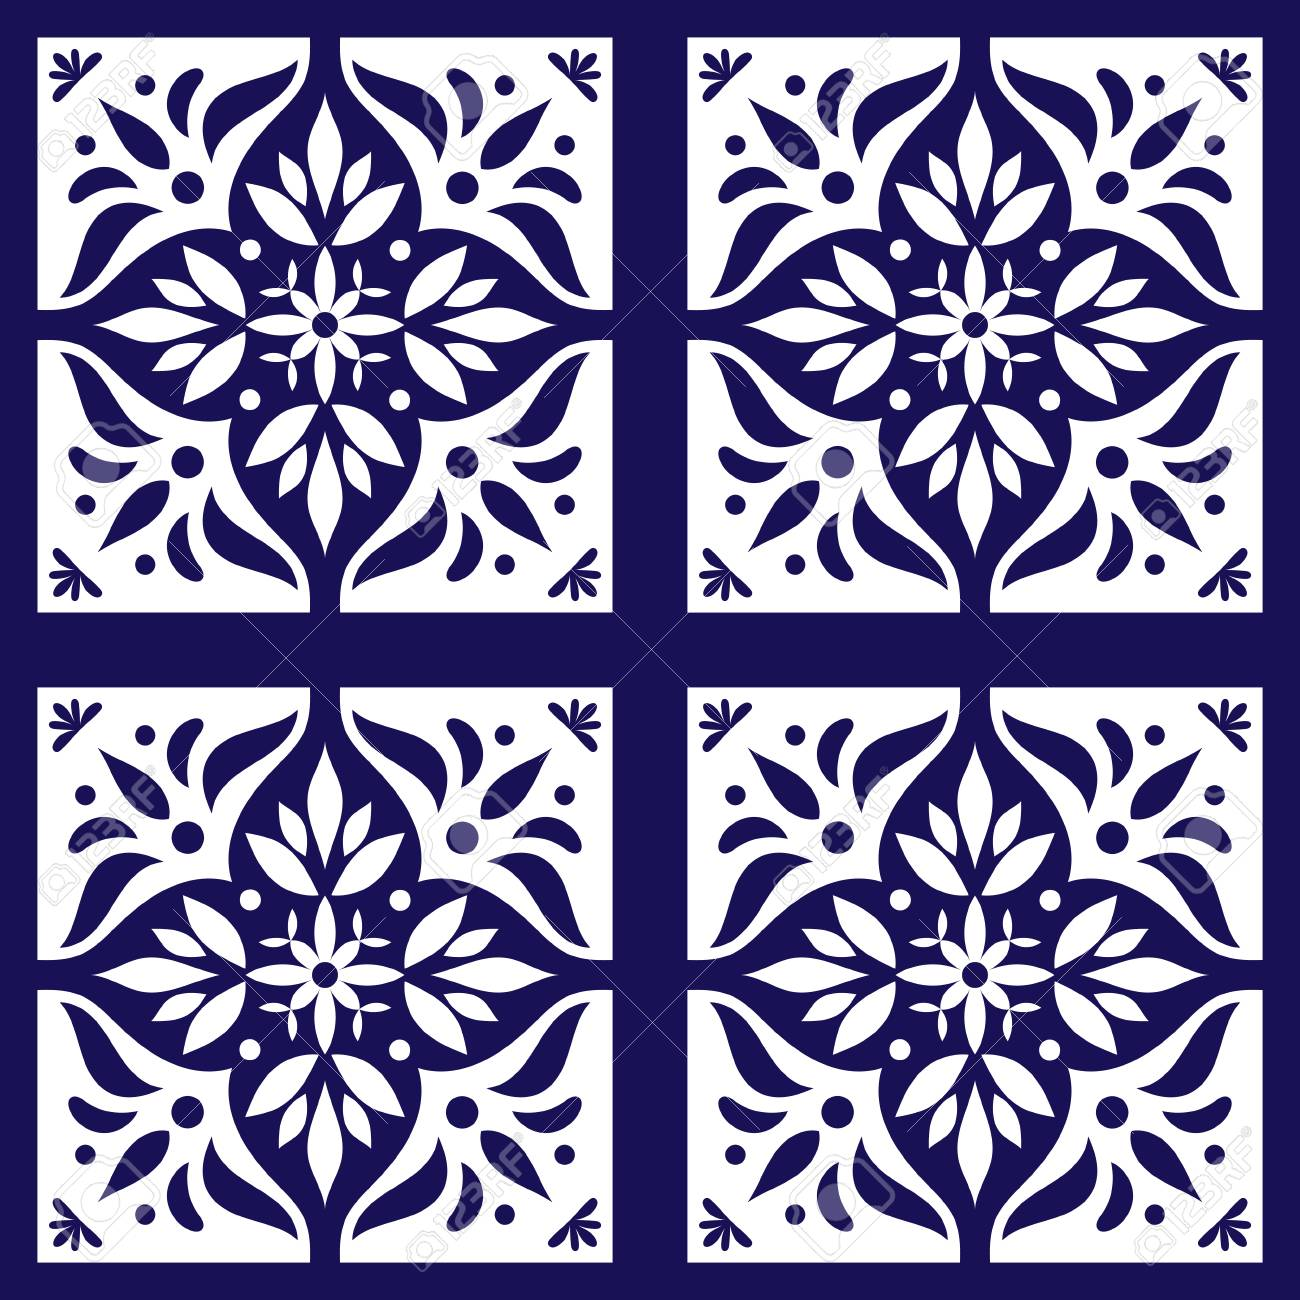 talavera mexican tiles pattern vector with blue and white flowers